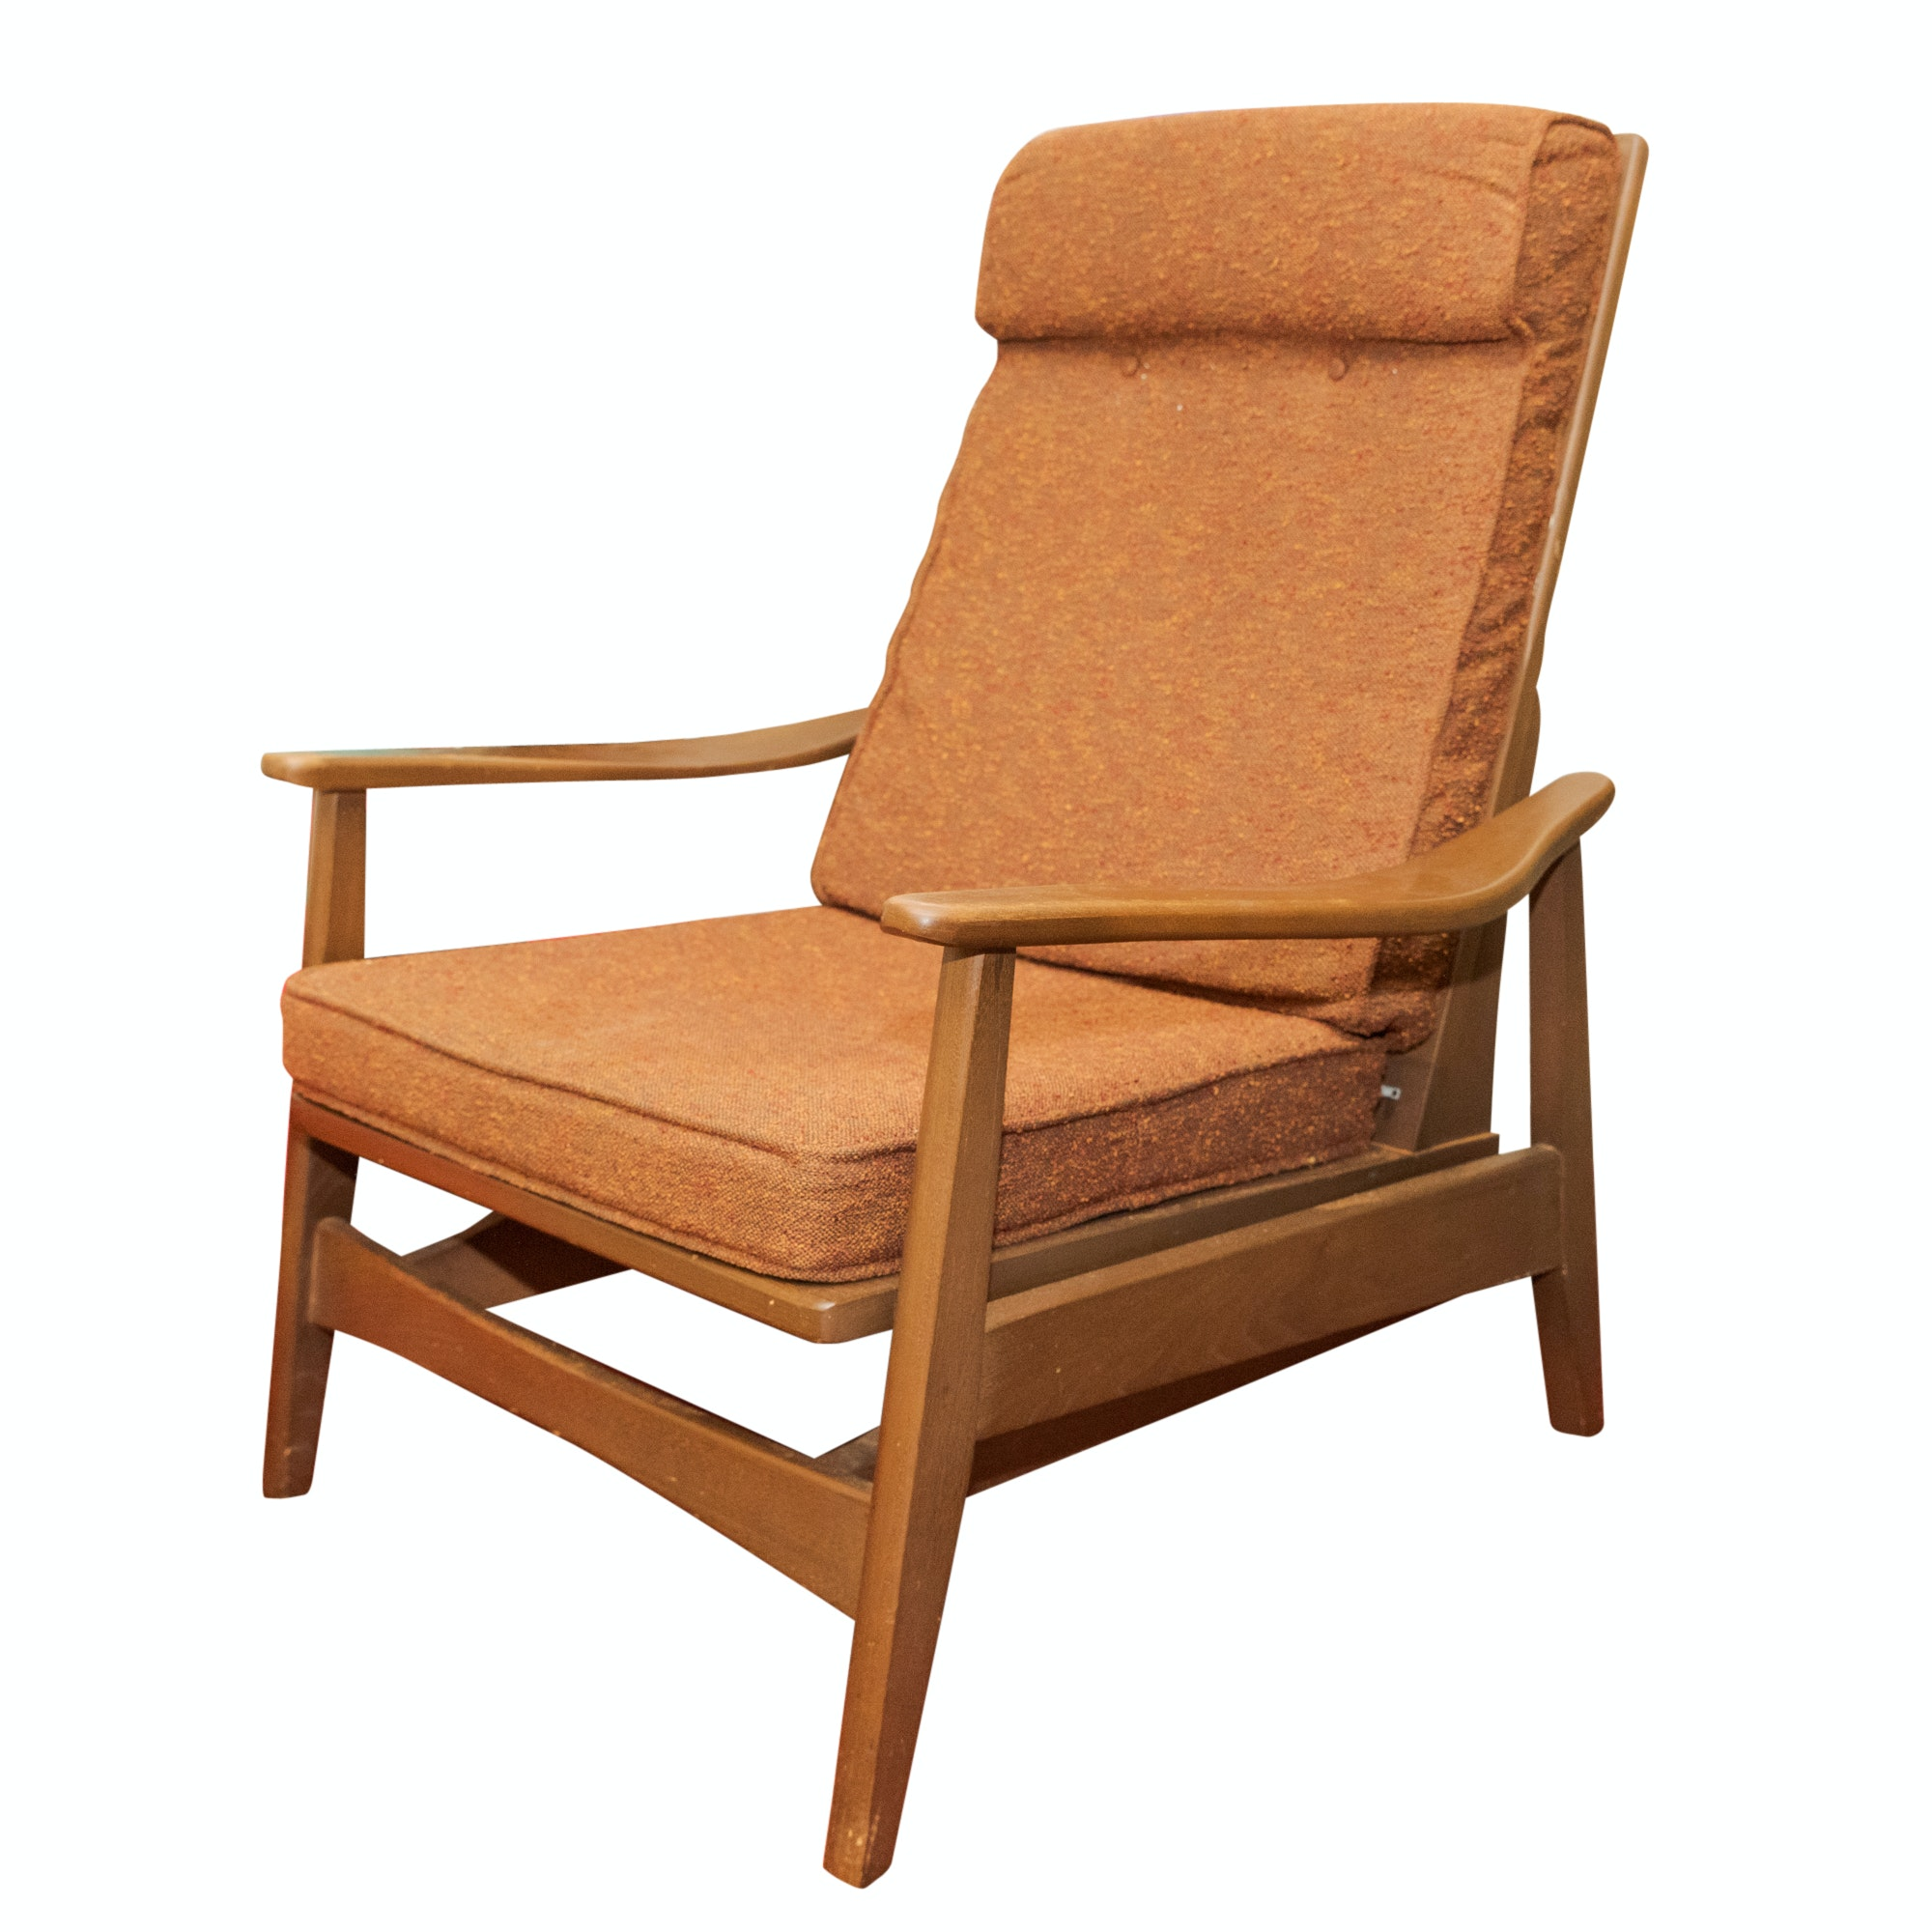 Danish Modern Style Teak Rocking Lounge Chair, Mid-20th Century